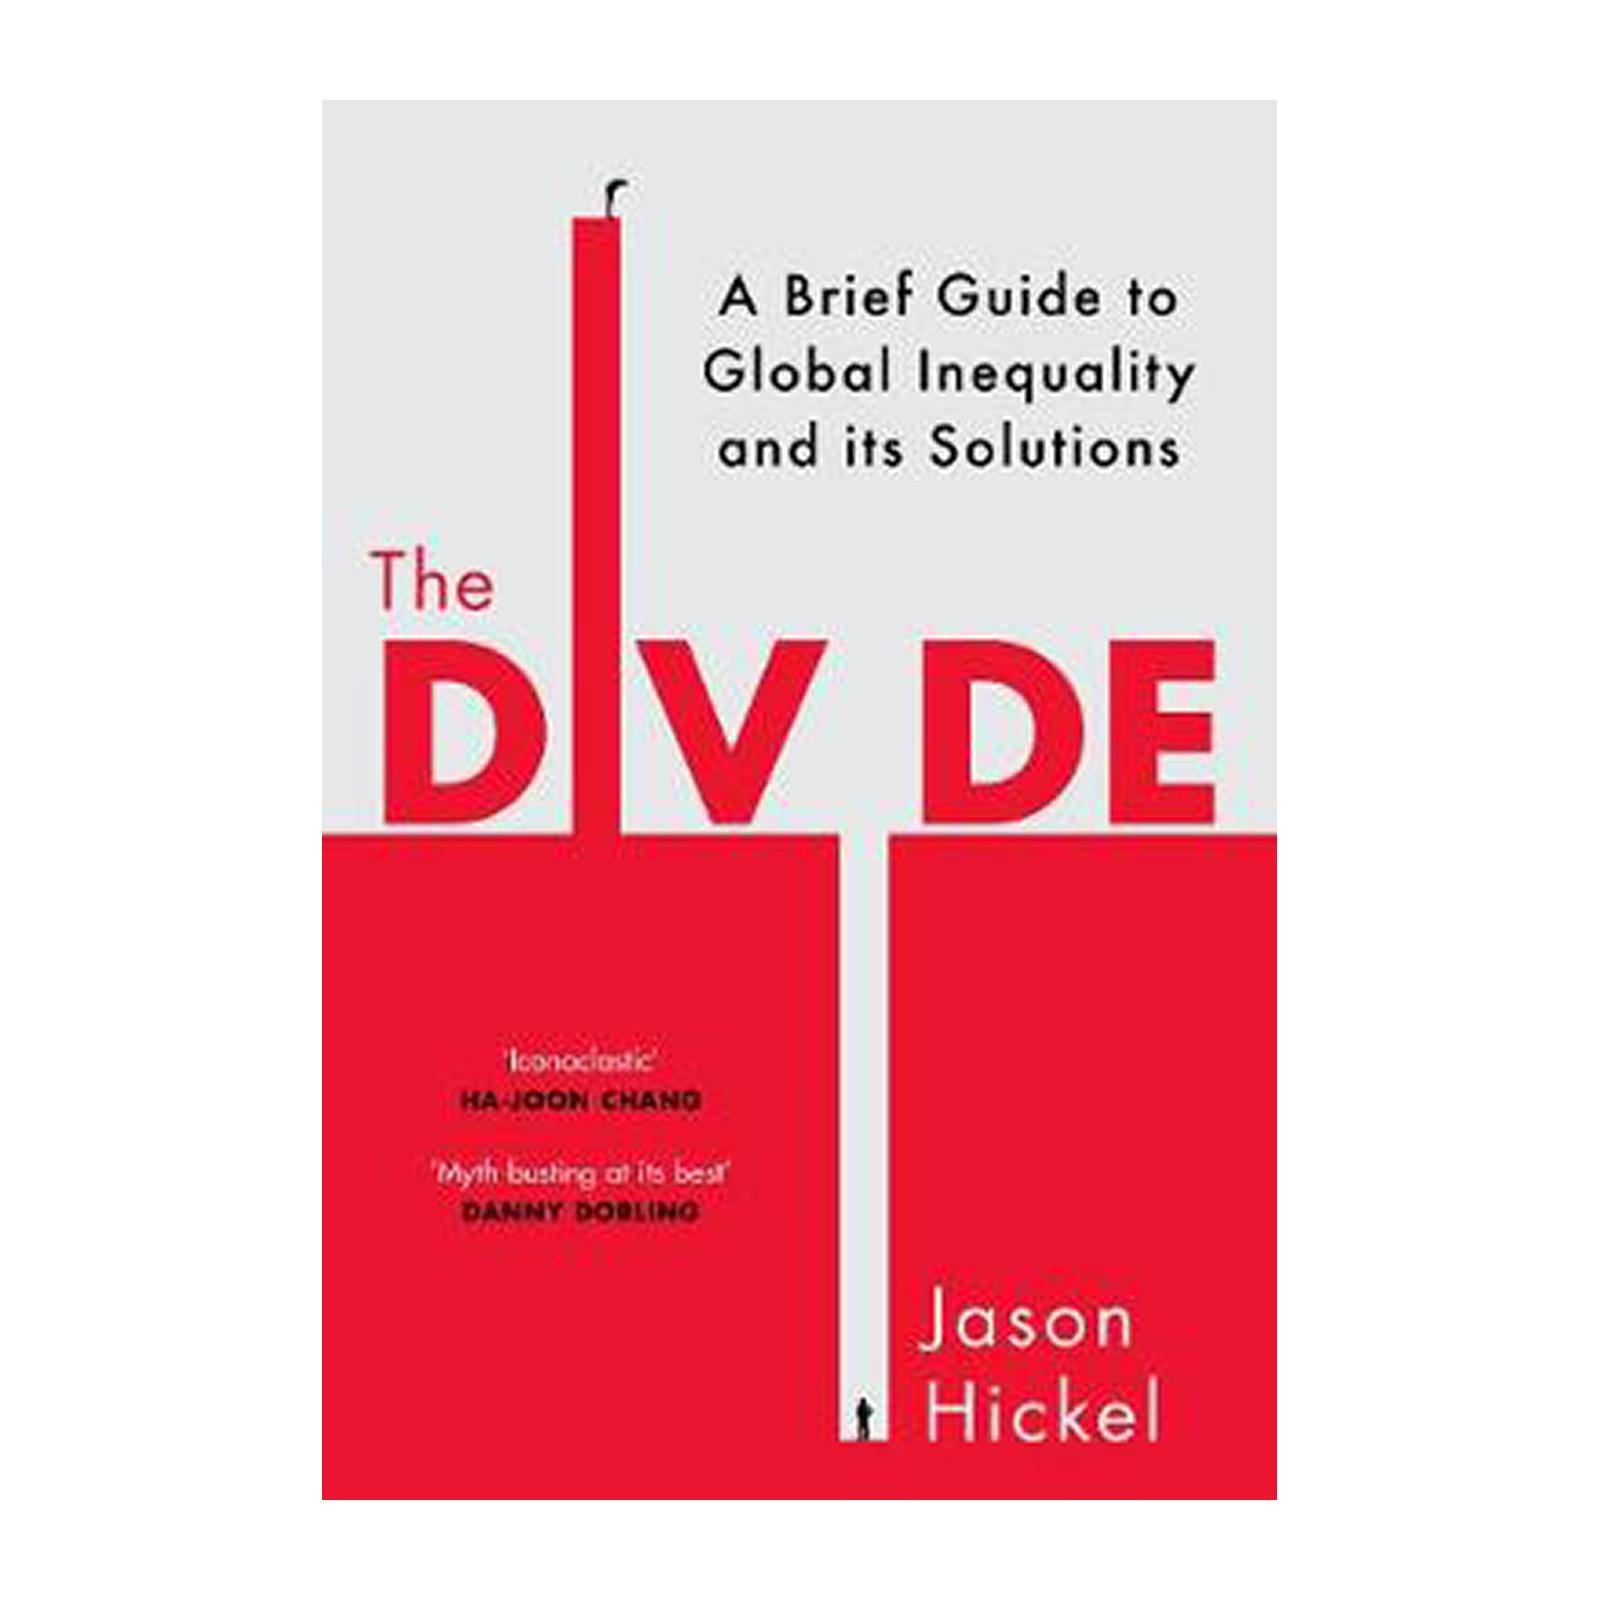 The Divide: A Brief Guide To Global Inequality And Its Solutions (Paperback)